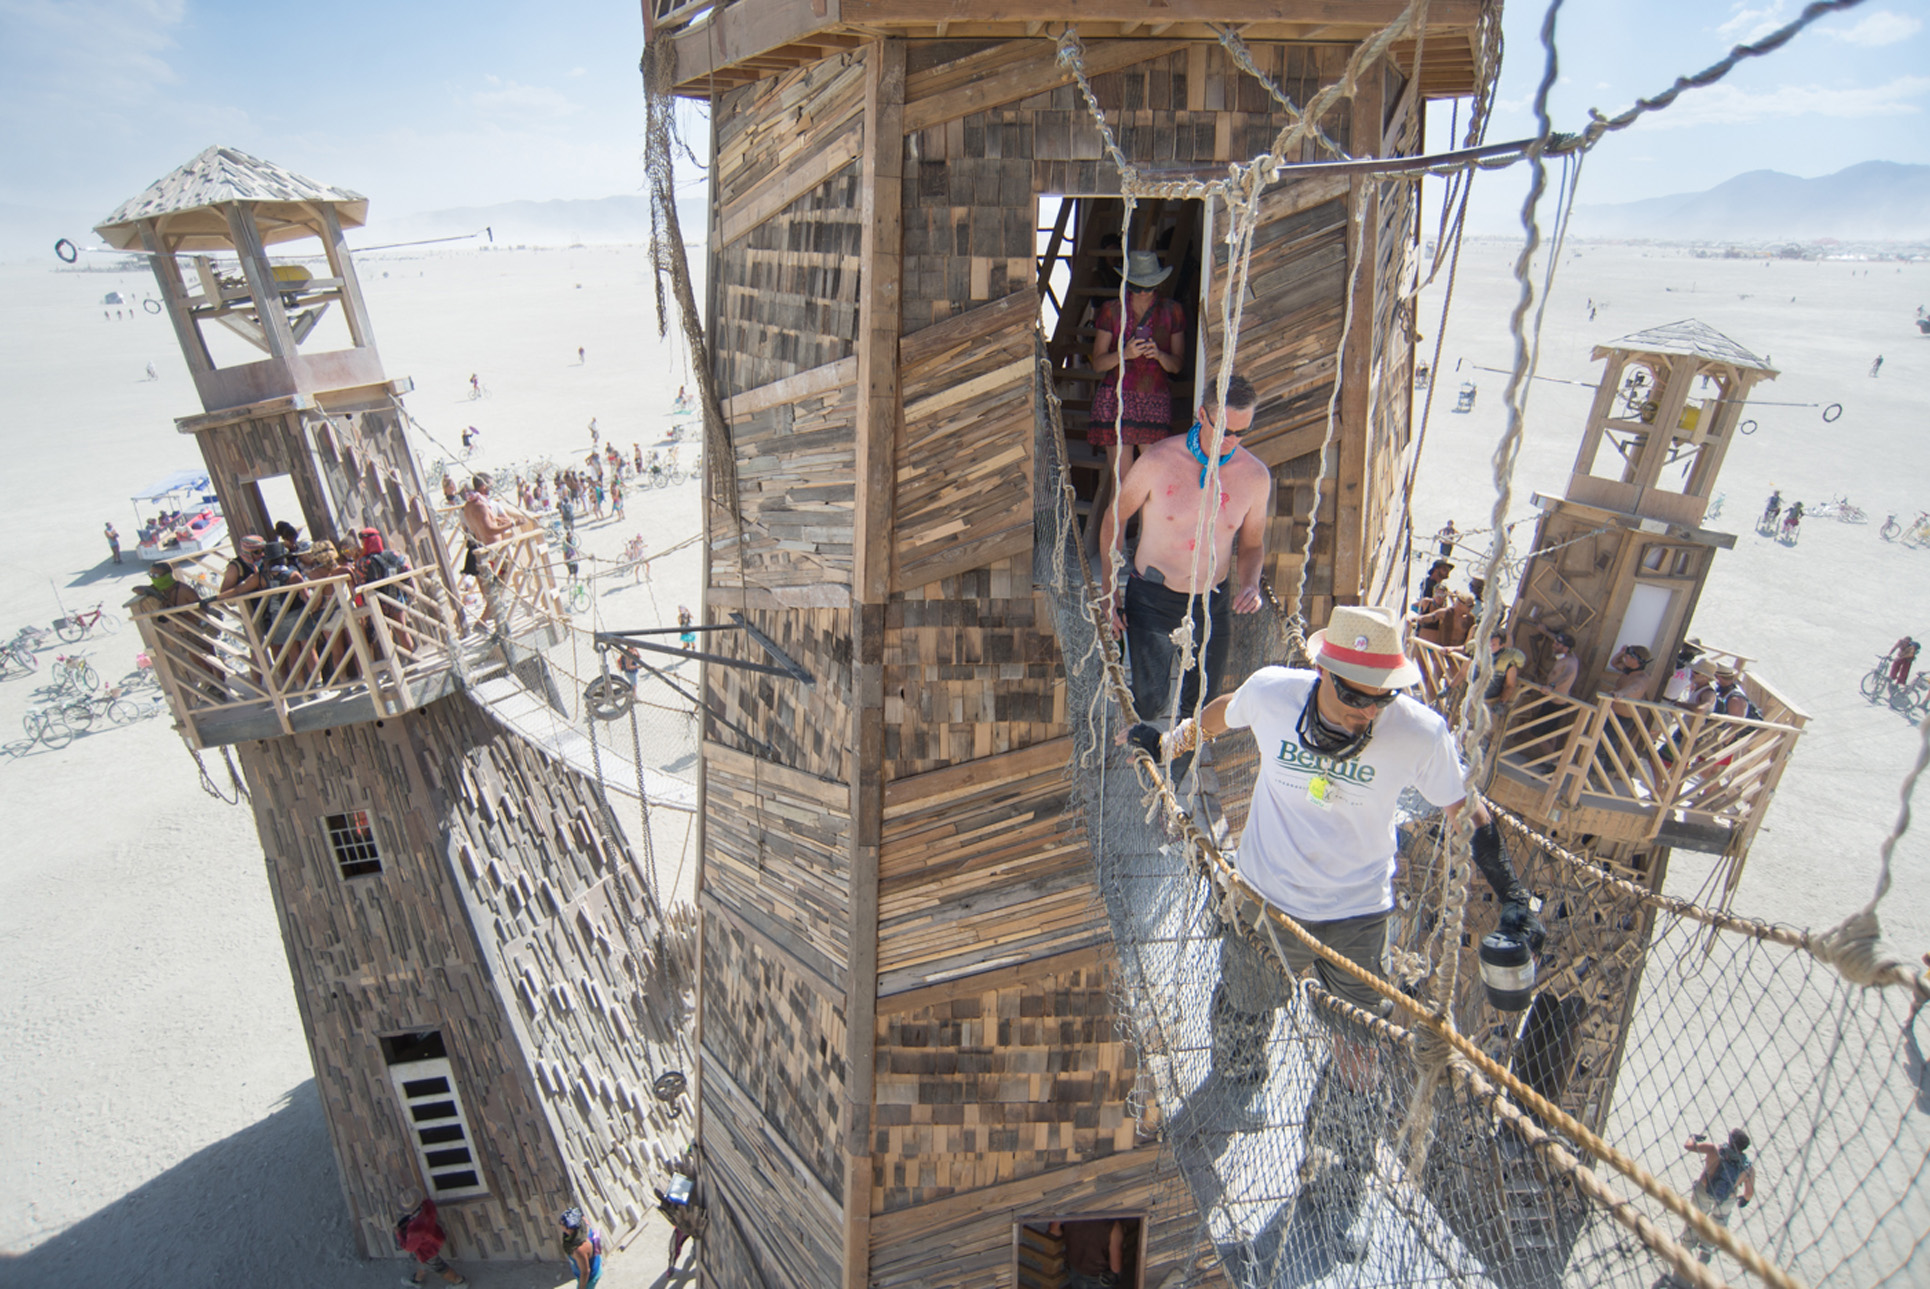 160831_0288_BurningMan2016.jpg